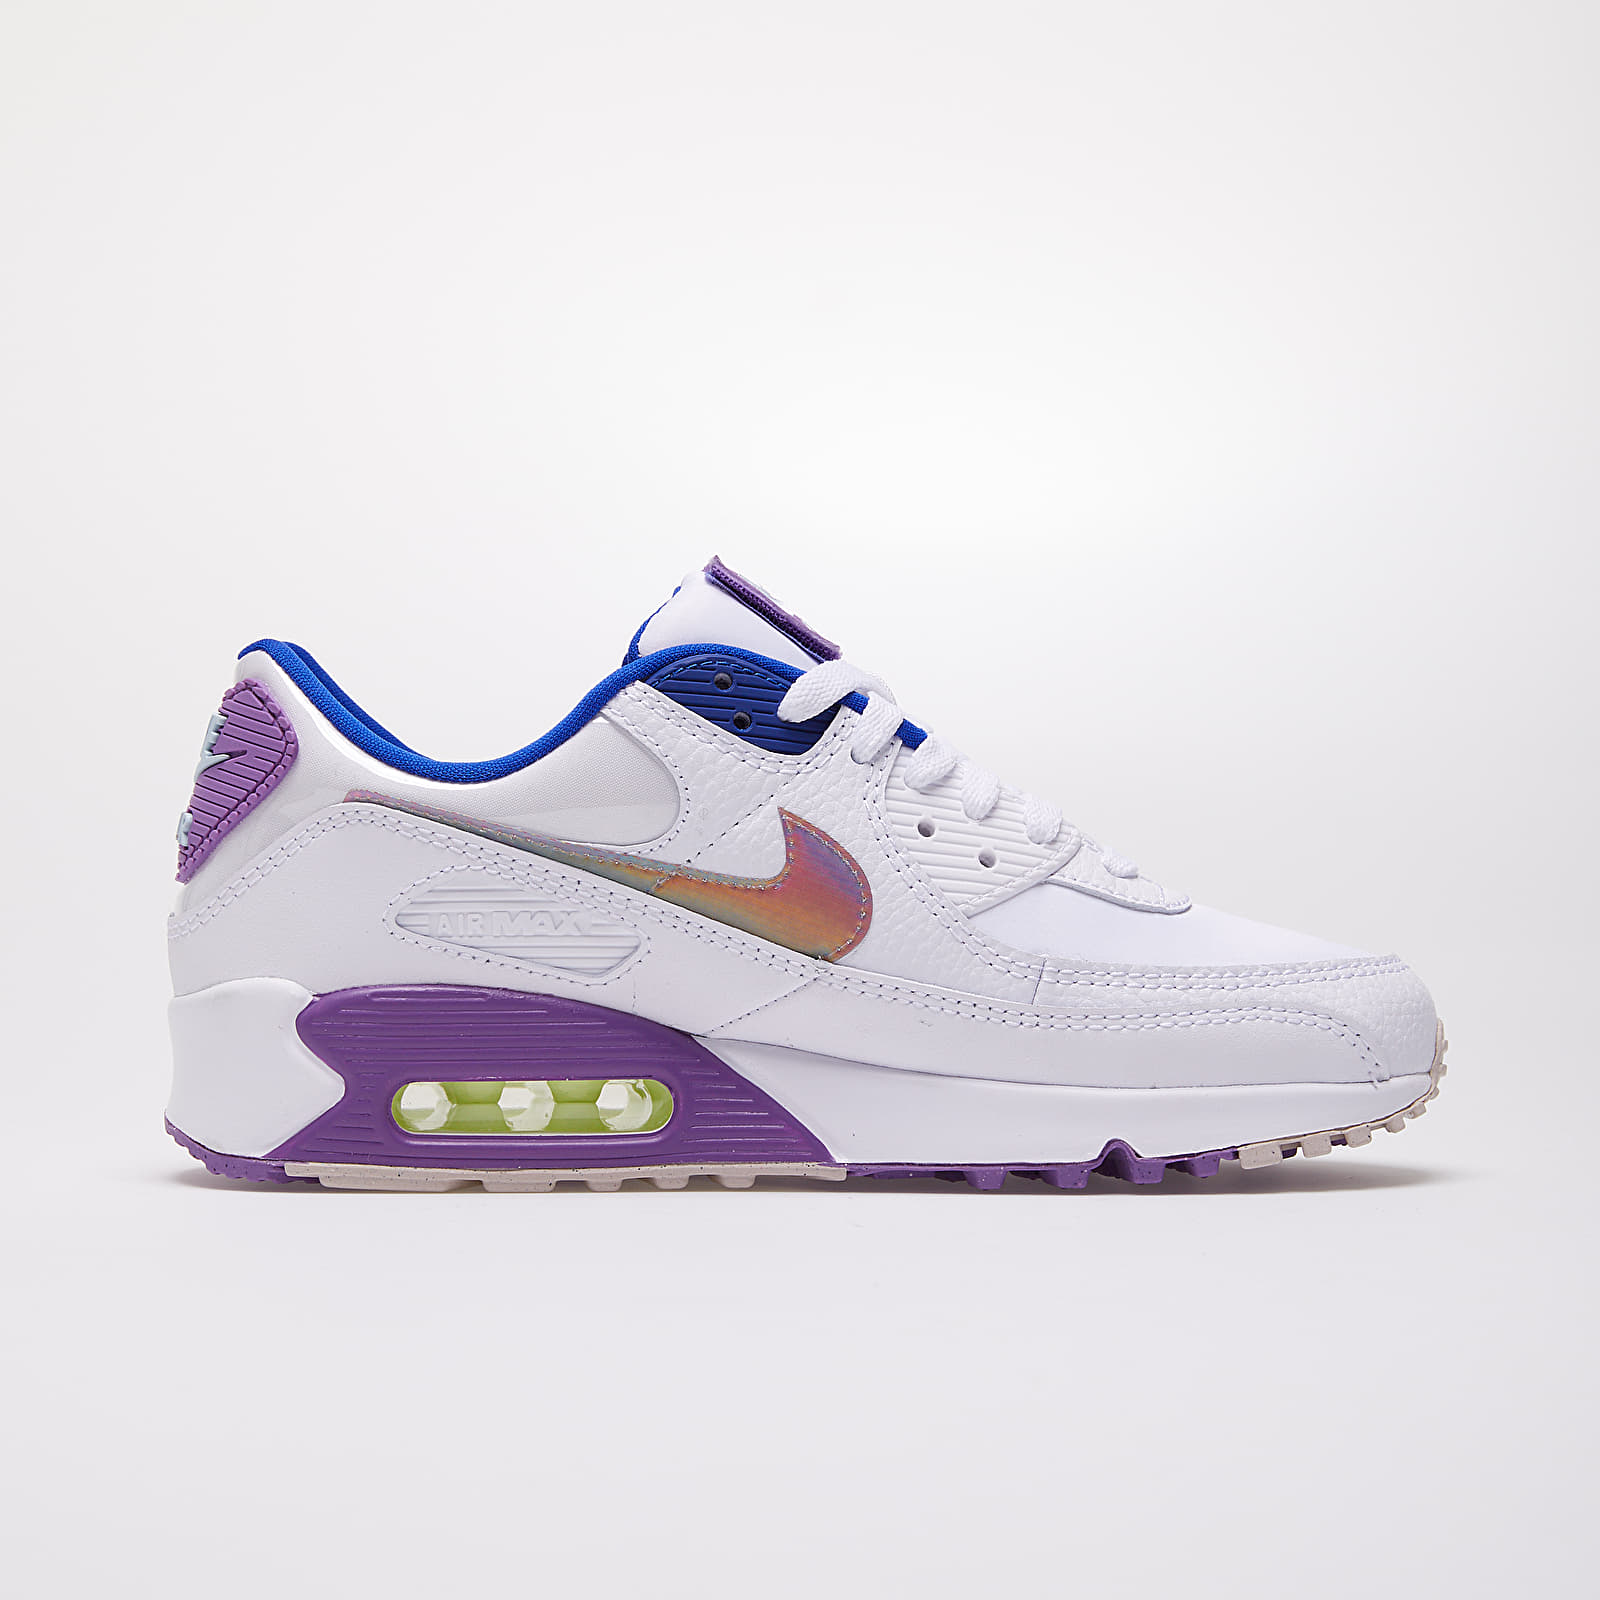 Nike W Air Max 90 SE White Multi Color Purple Nebula | Footshop